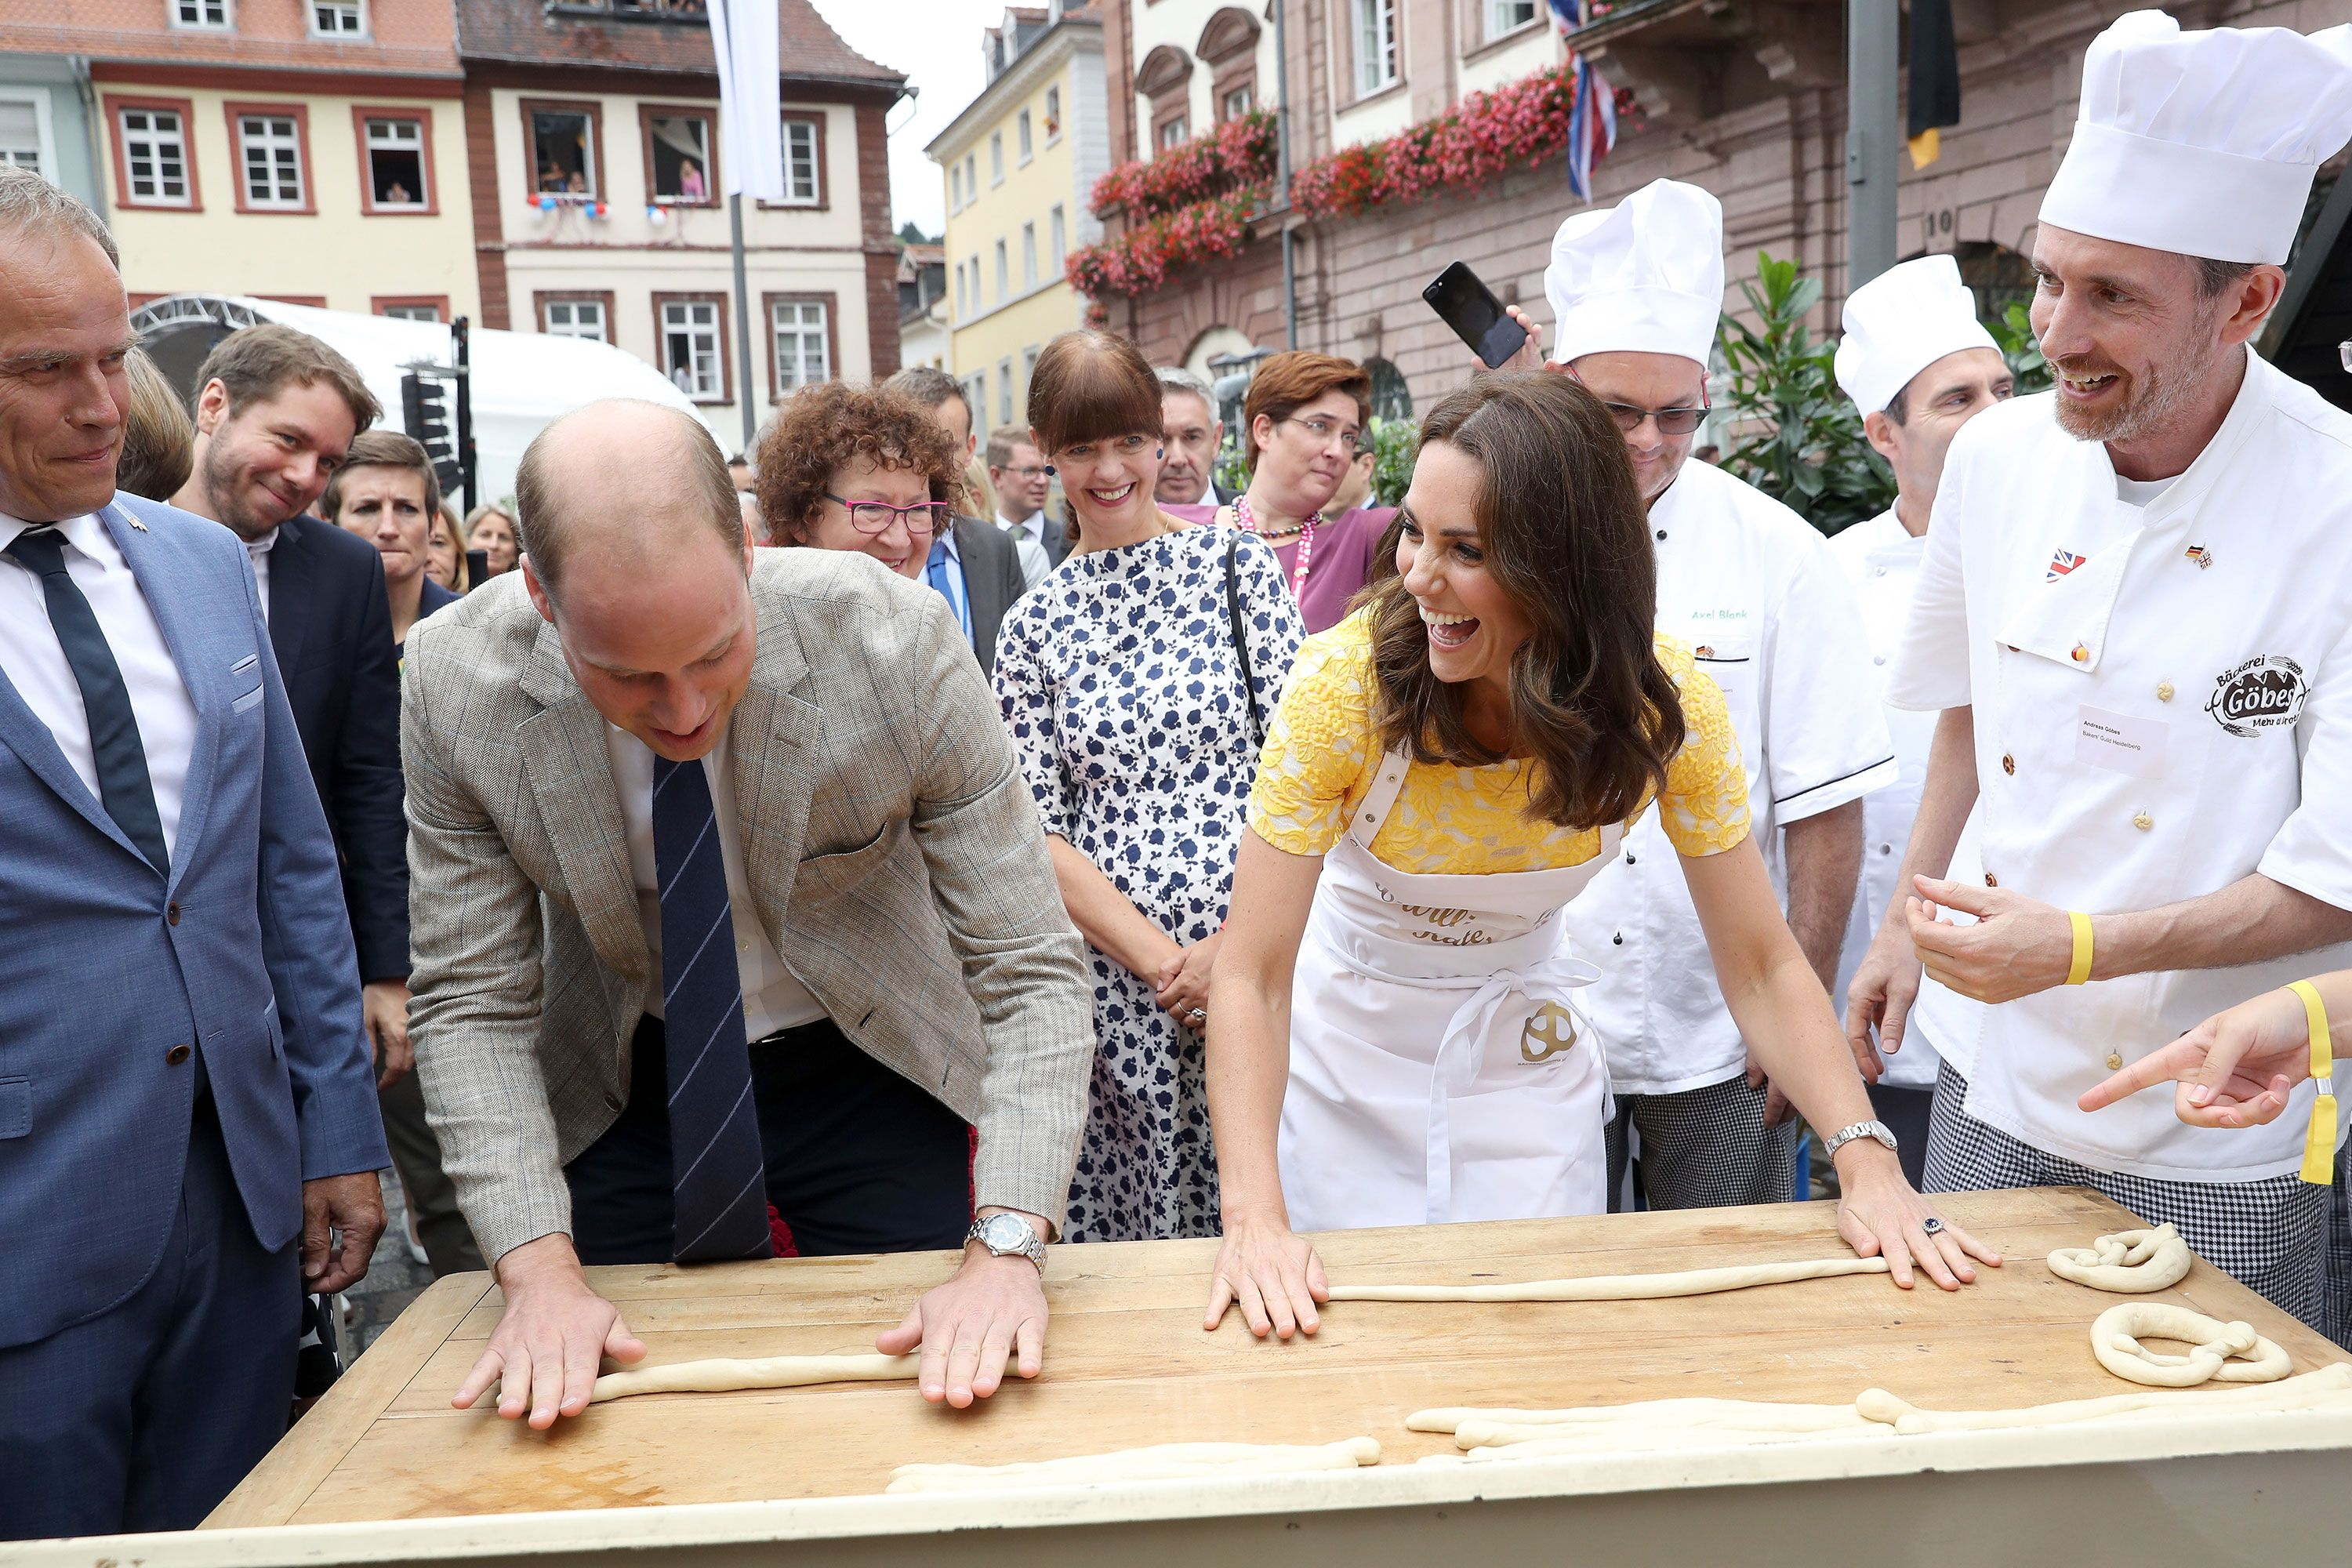 Göbes Heidelberg the royal tour of poland and germany in pictures 2017 duke and